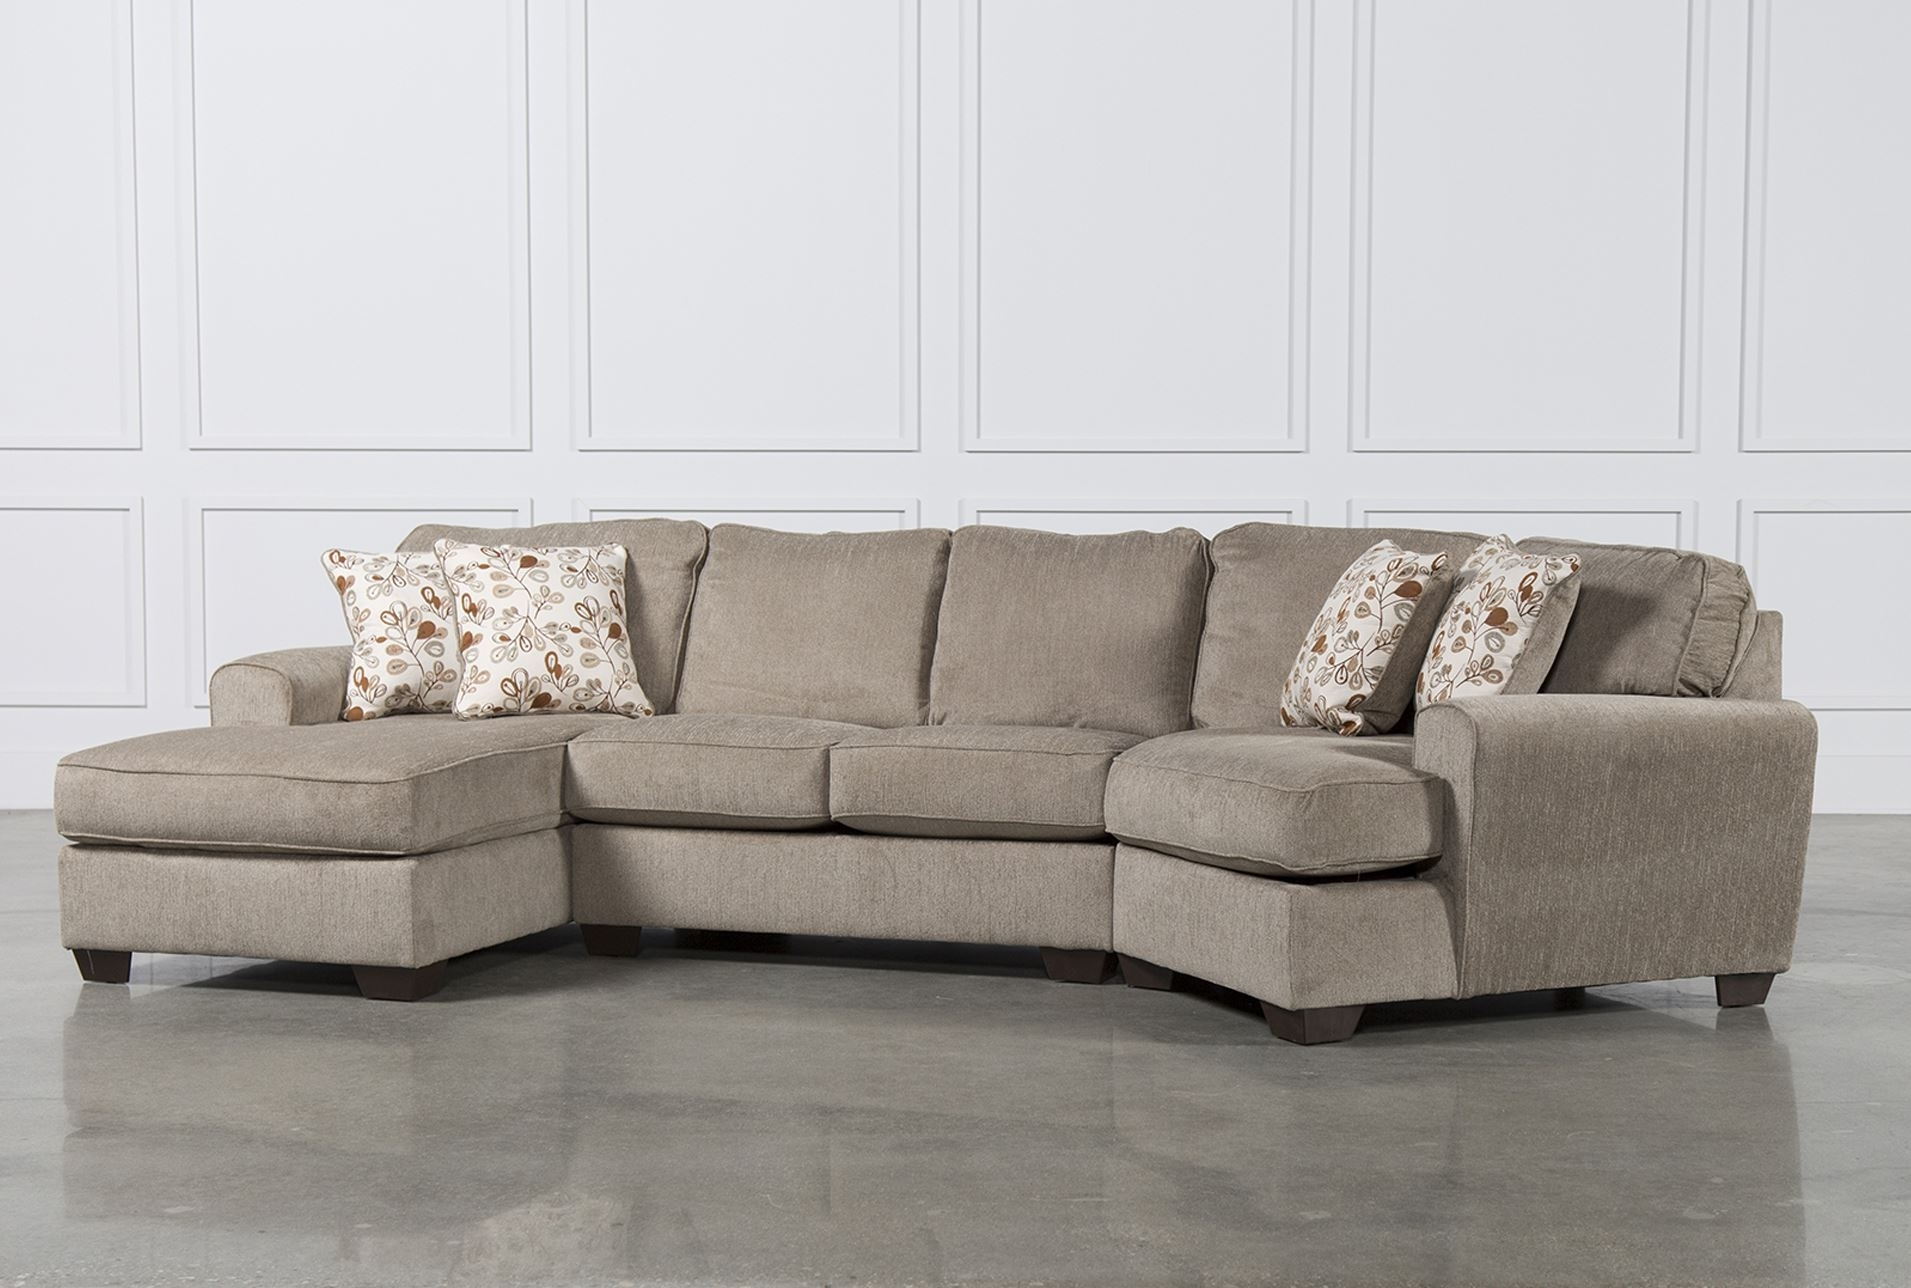 Sectional Sofa : Large Comfy Sectional 4 Piece Sectional Couch Pertaining To 3 Piece Sectional Sleeper Sofas (View 9 of 10)